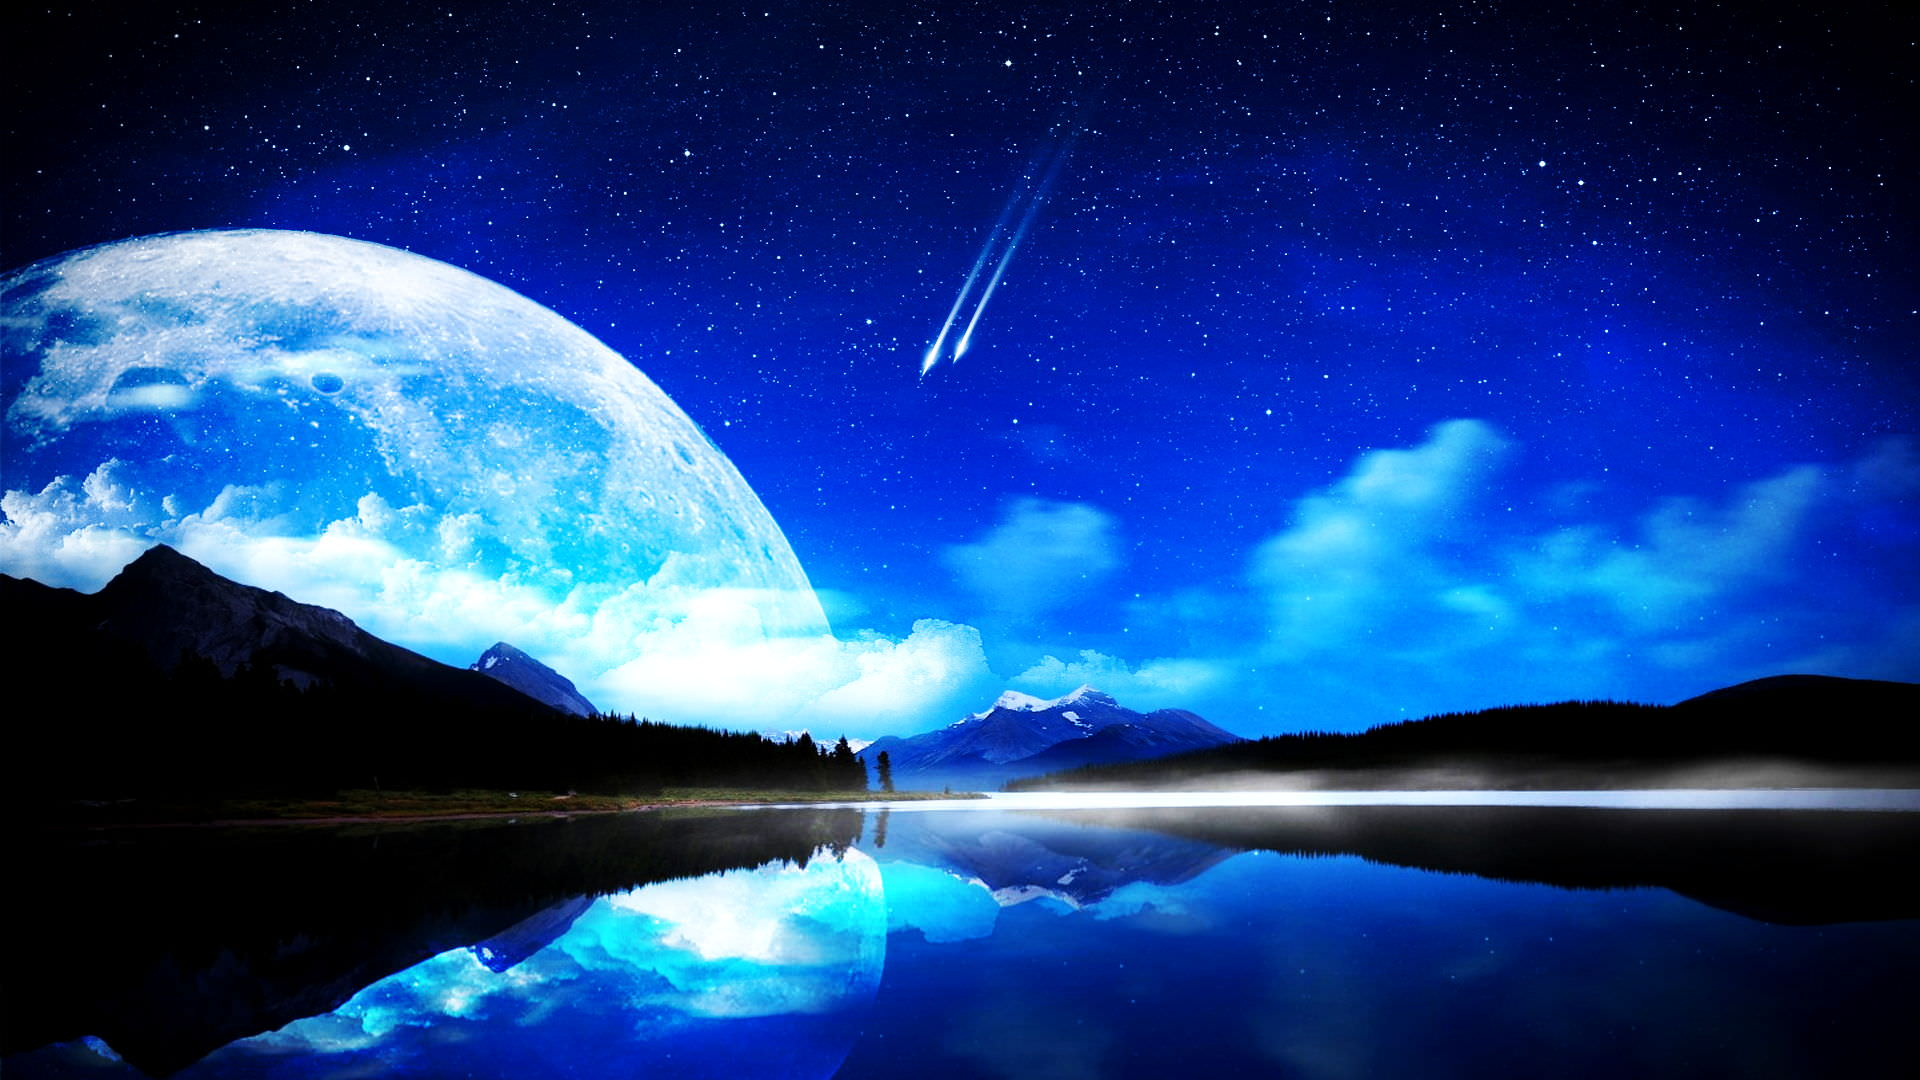 awesome moon wide image